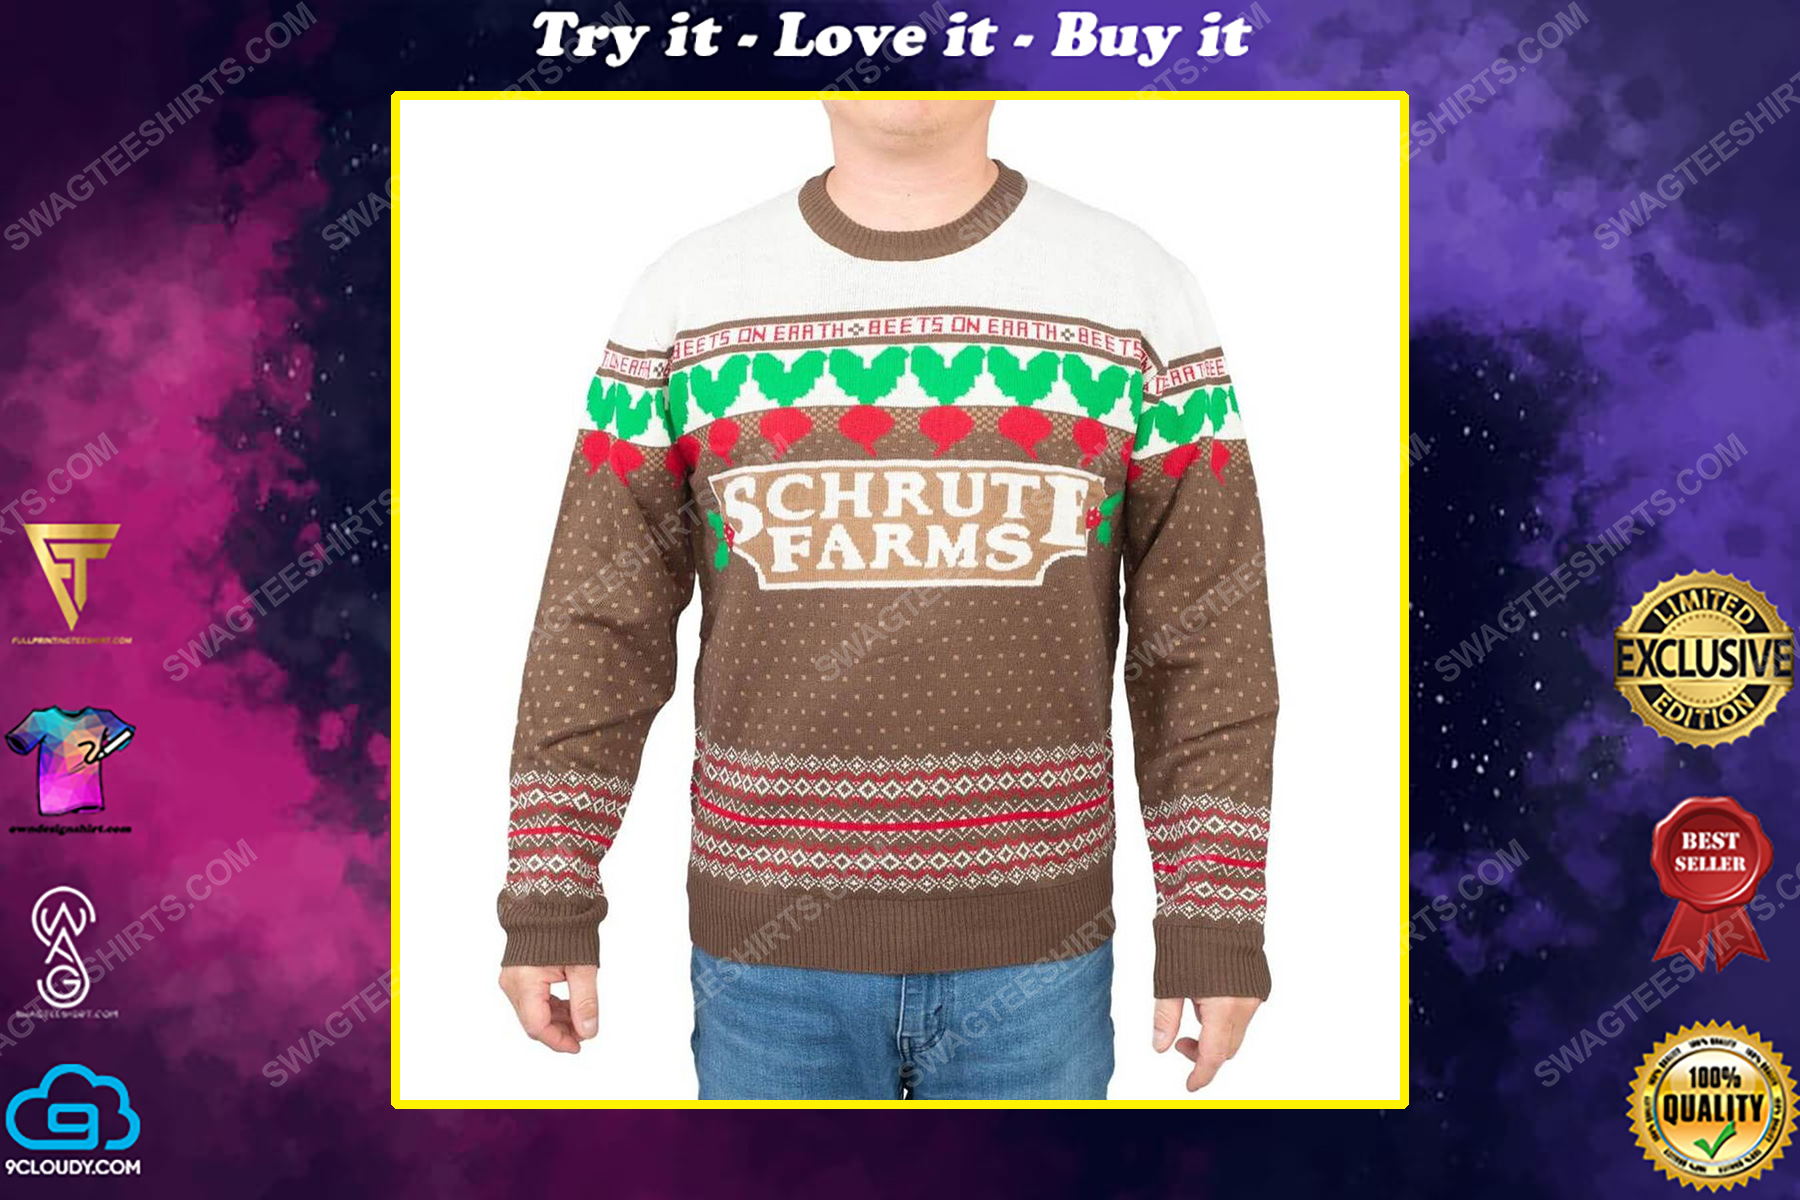 The office dwight schrute farms beets full print ugly christmas sweater